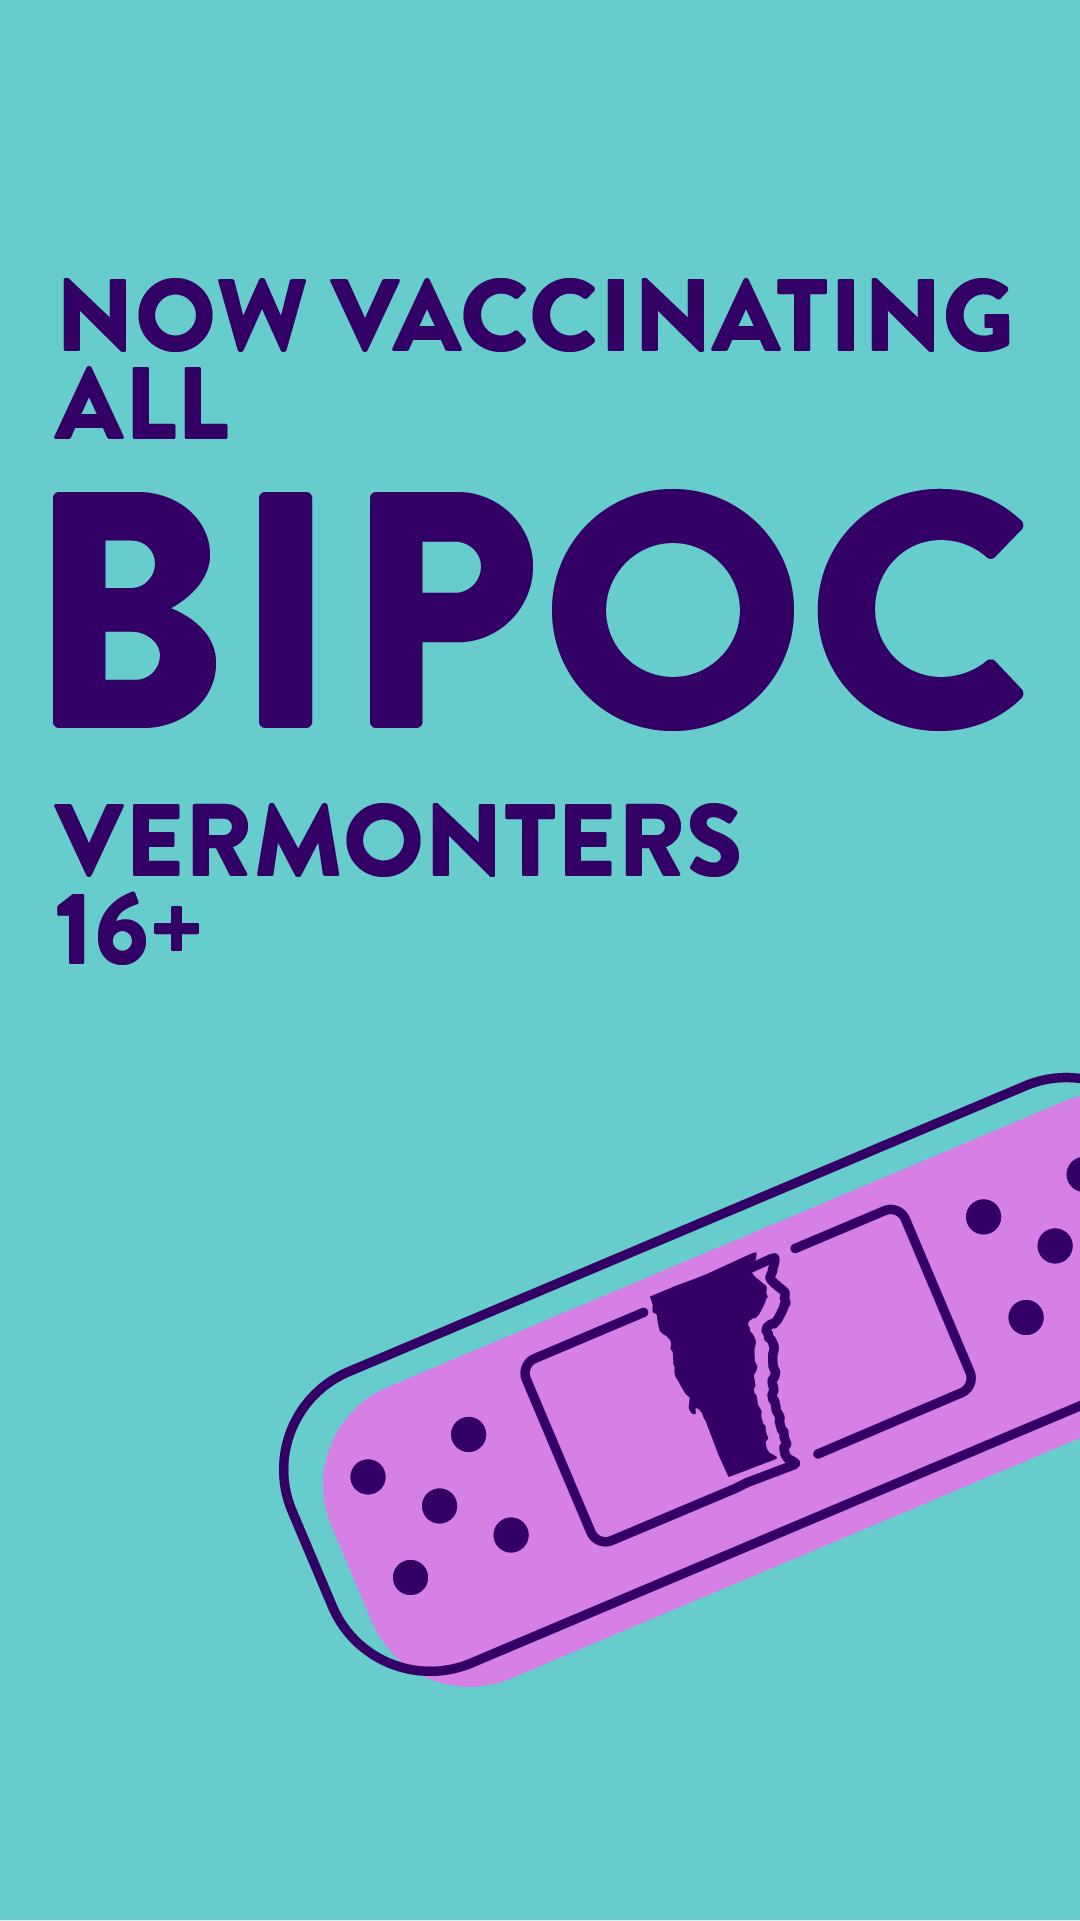 Now vaccinating all BIPOC Vermonters 16+